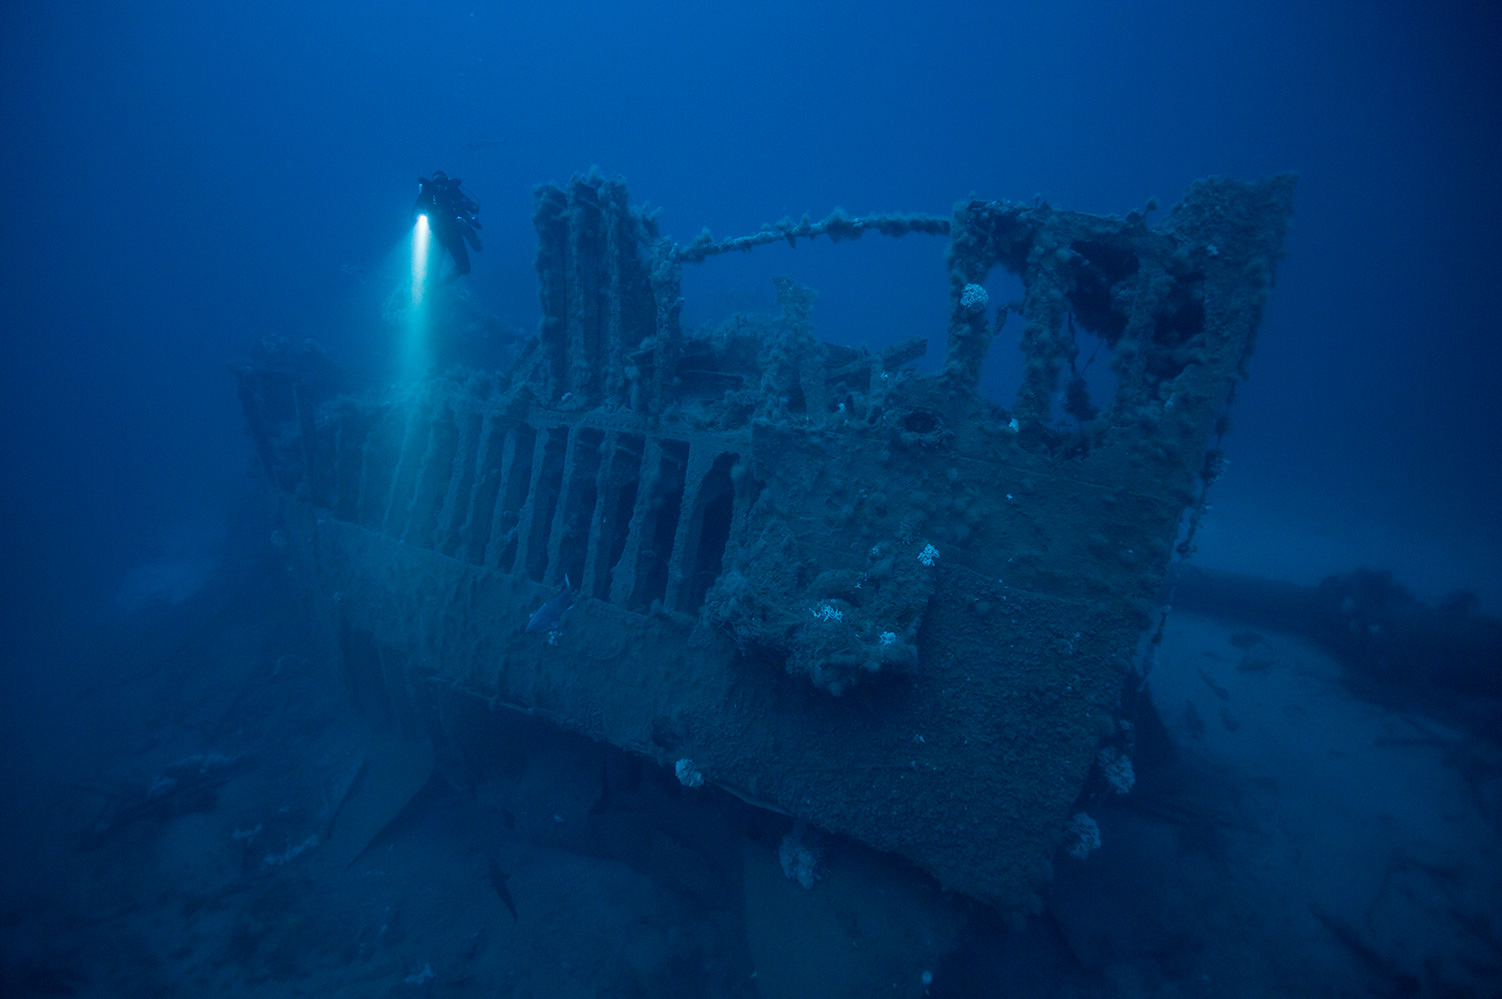 Bigblue dive lights sunken ship underwater photography